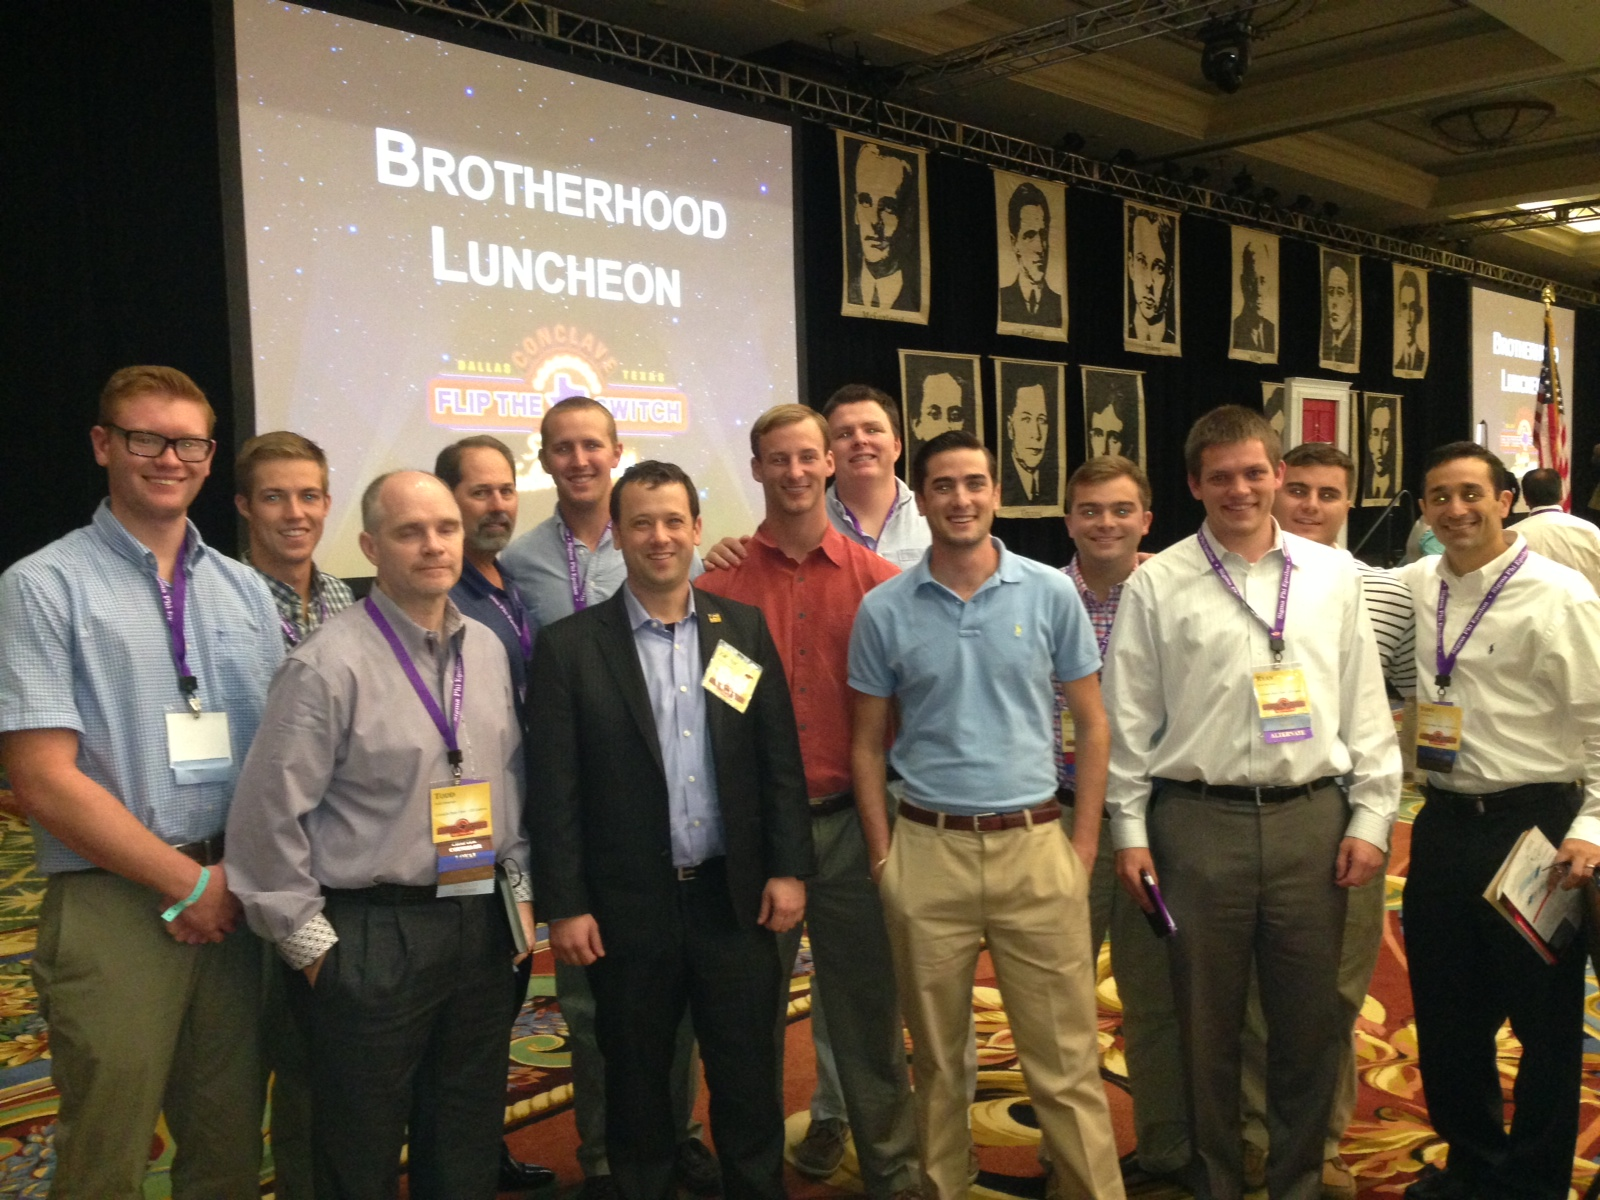 CSU SigEp Alumni & Undergrads at the Brotherhood Luncheon